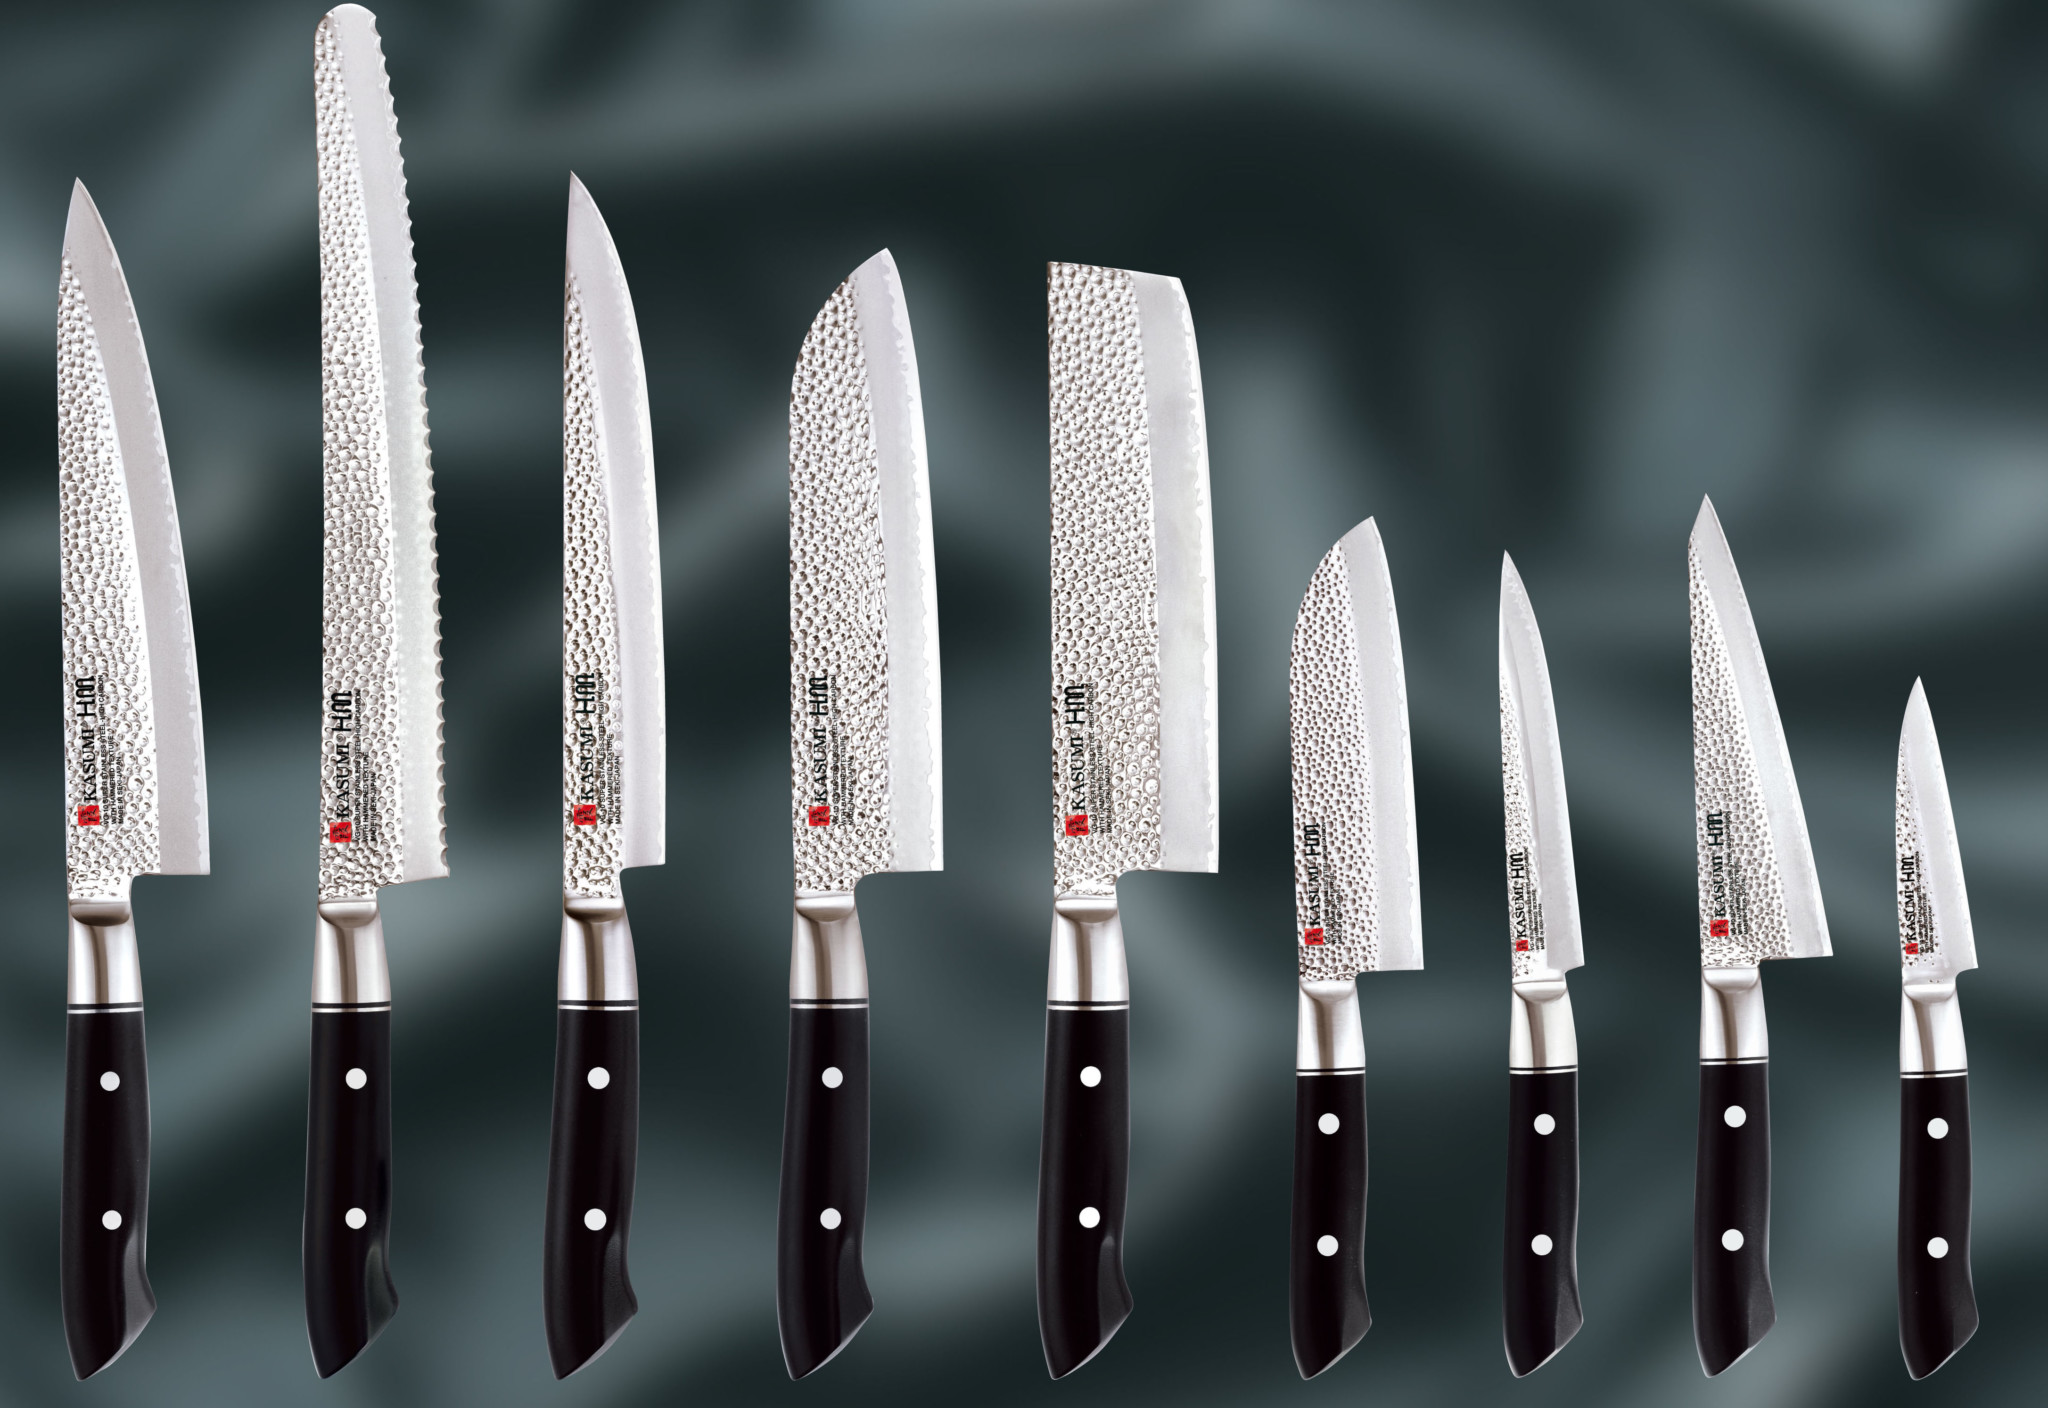 The Kasumi HM Hammered range from Russums CROP